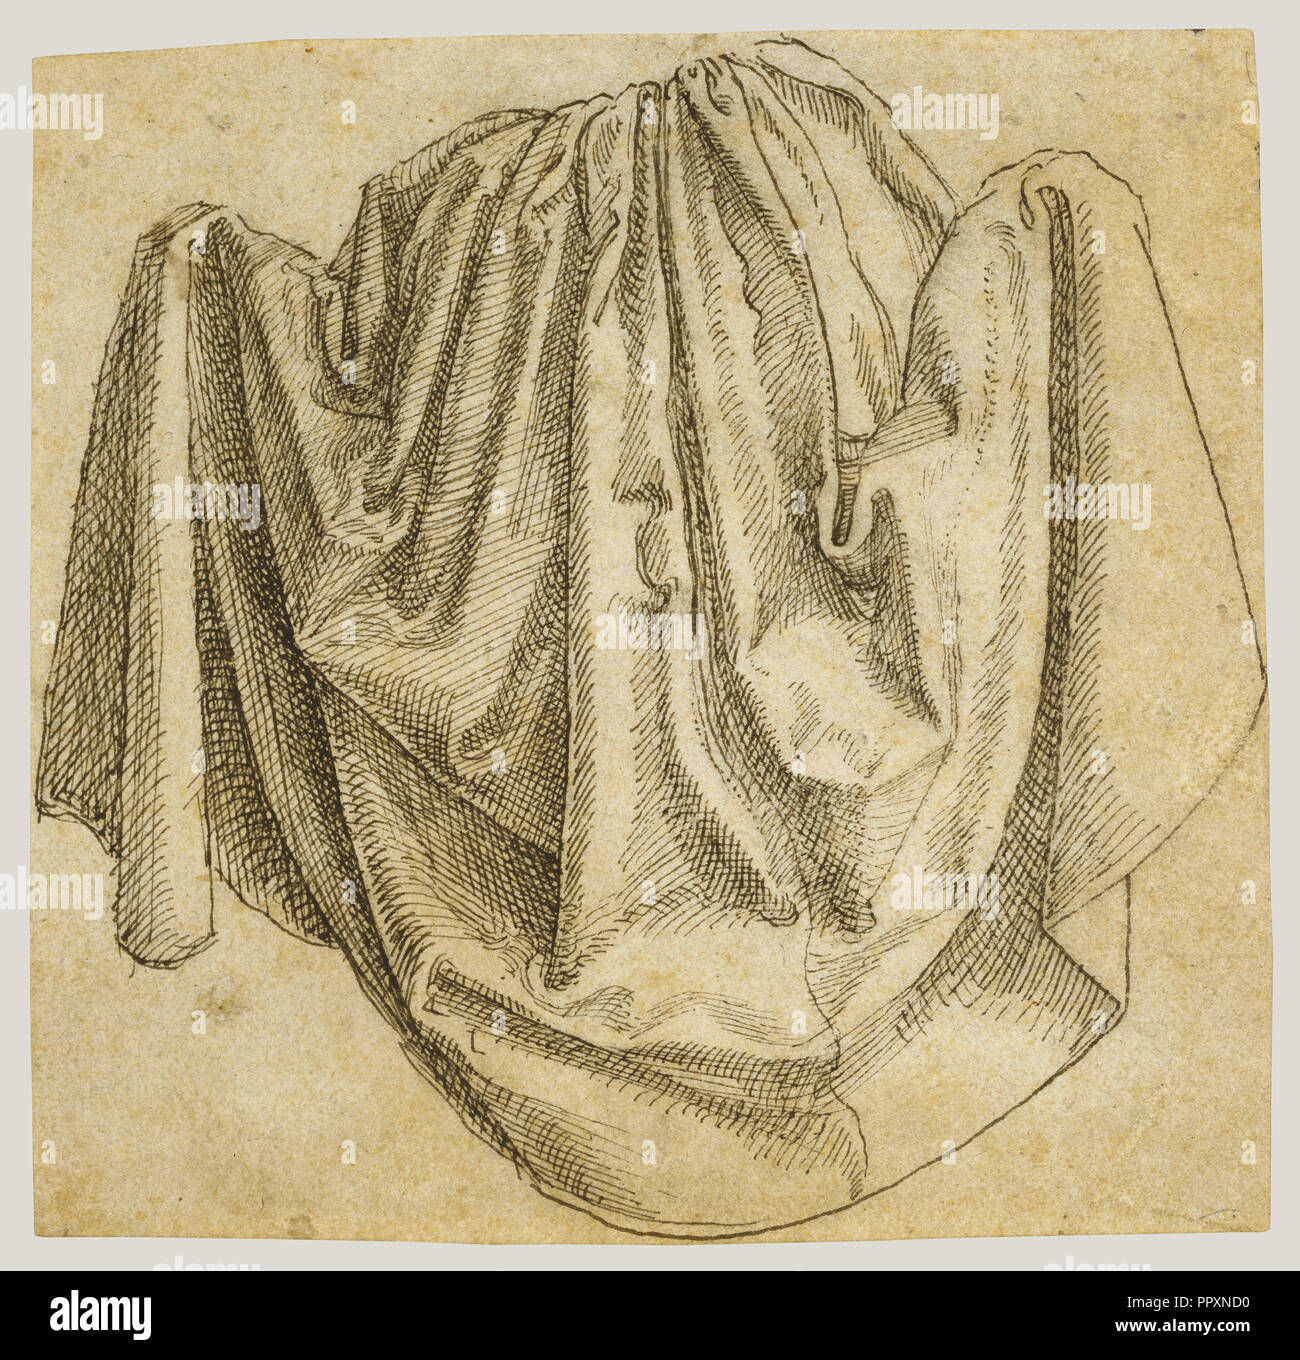 Study of a Hanging Drapery; Hans Brosamer, German, about 1500 - about 1554,  about 1530 - 1540; Pen and black ink